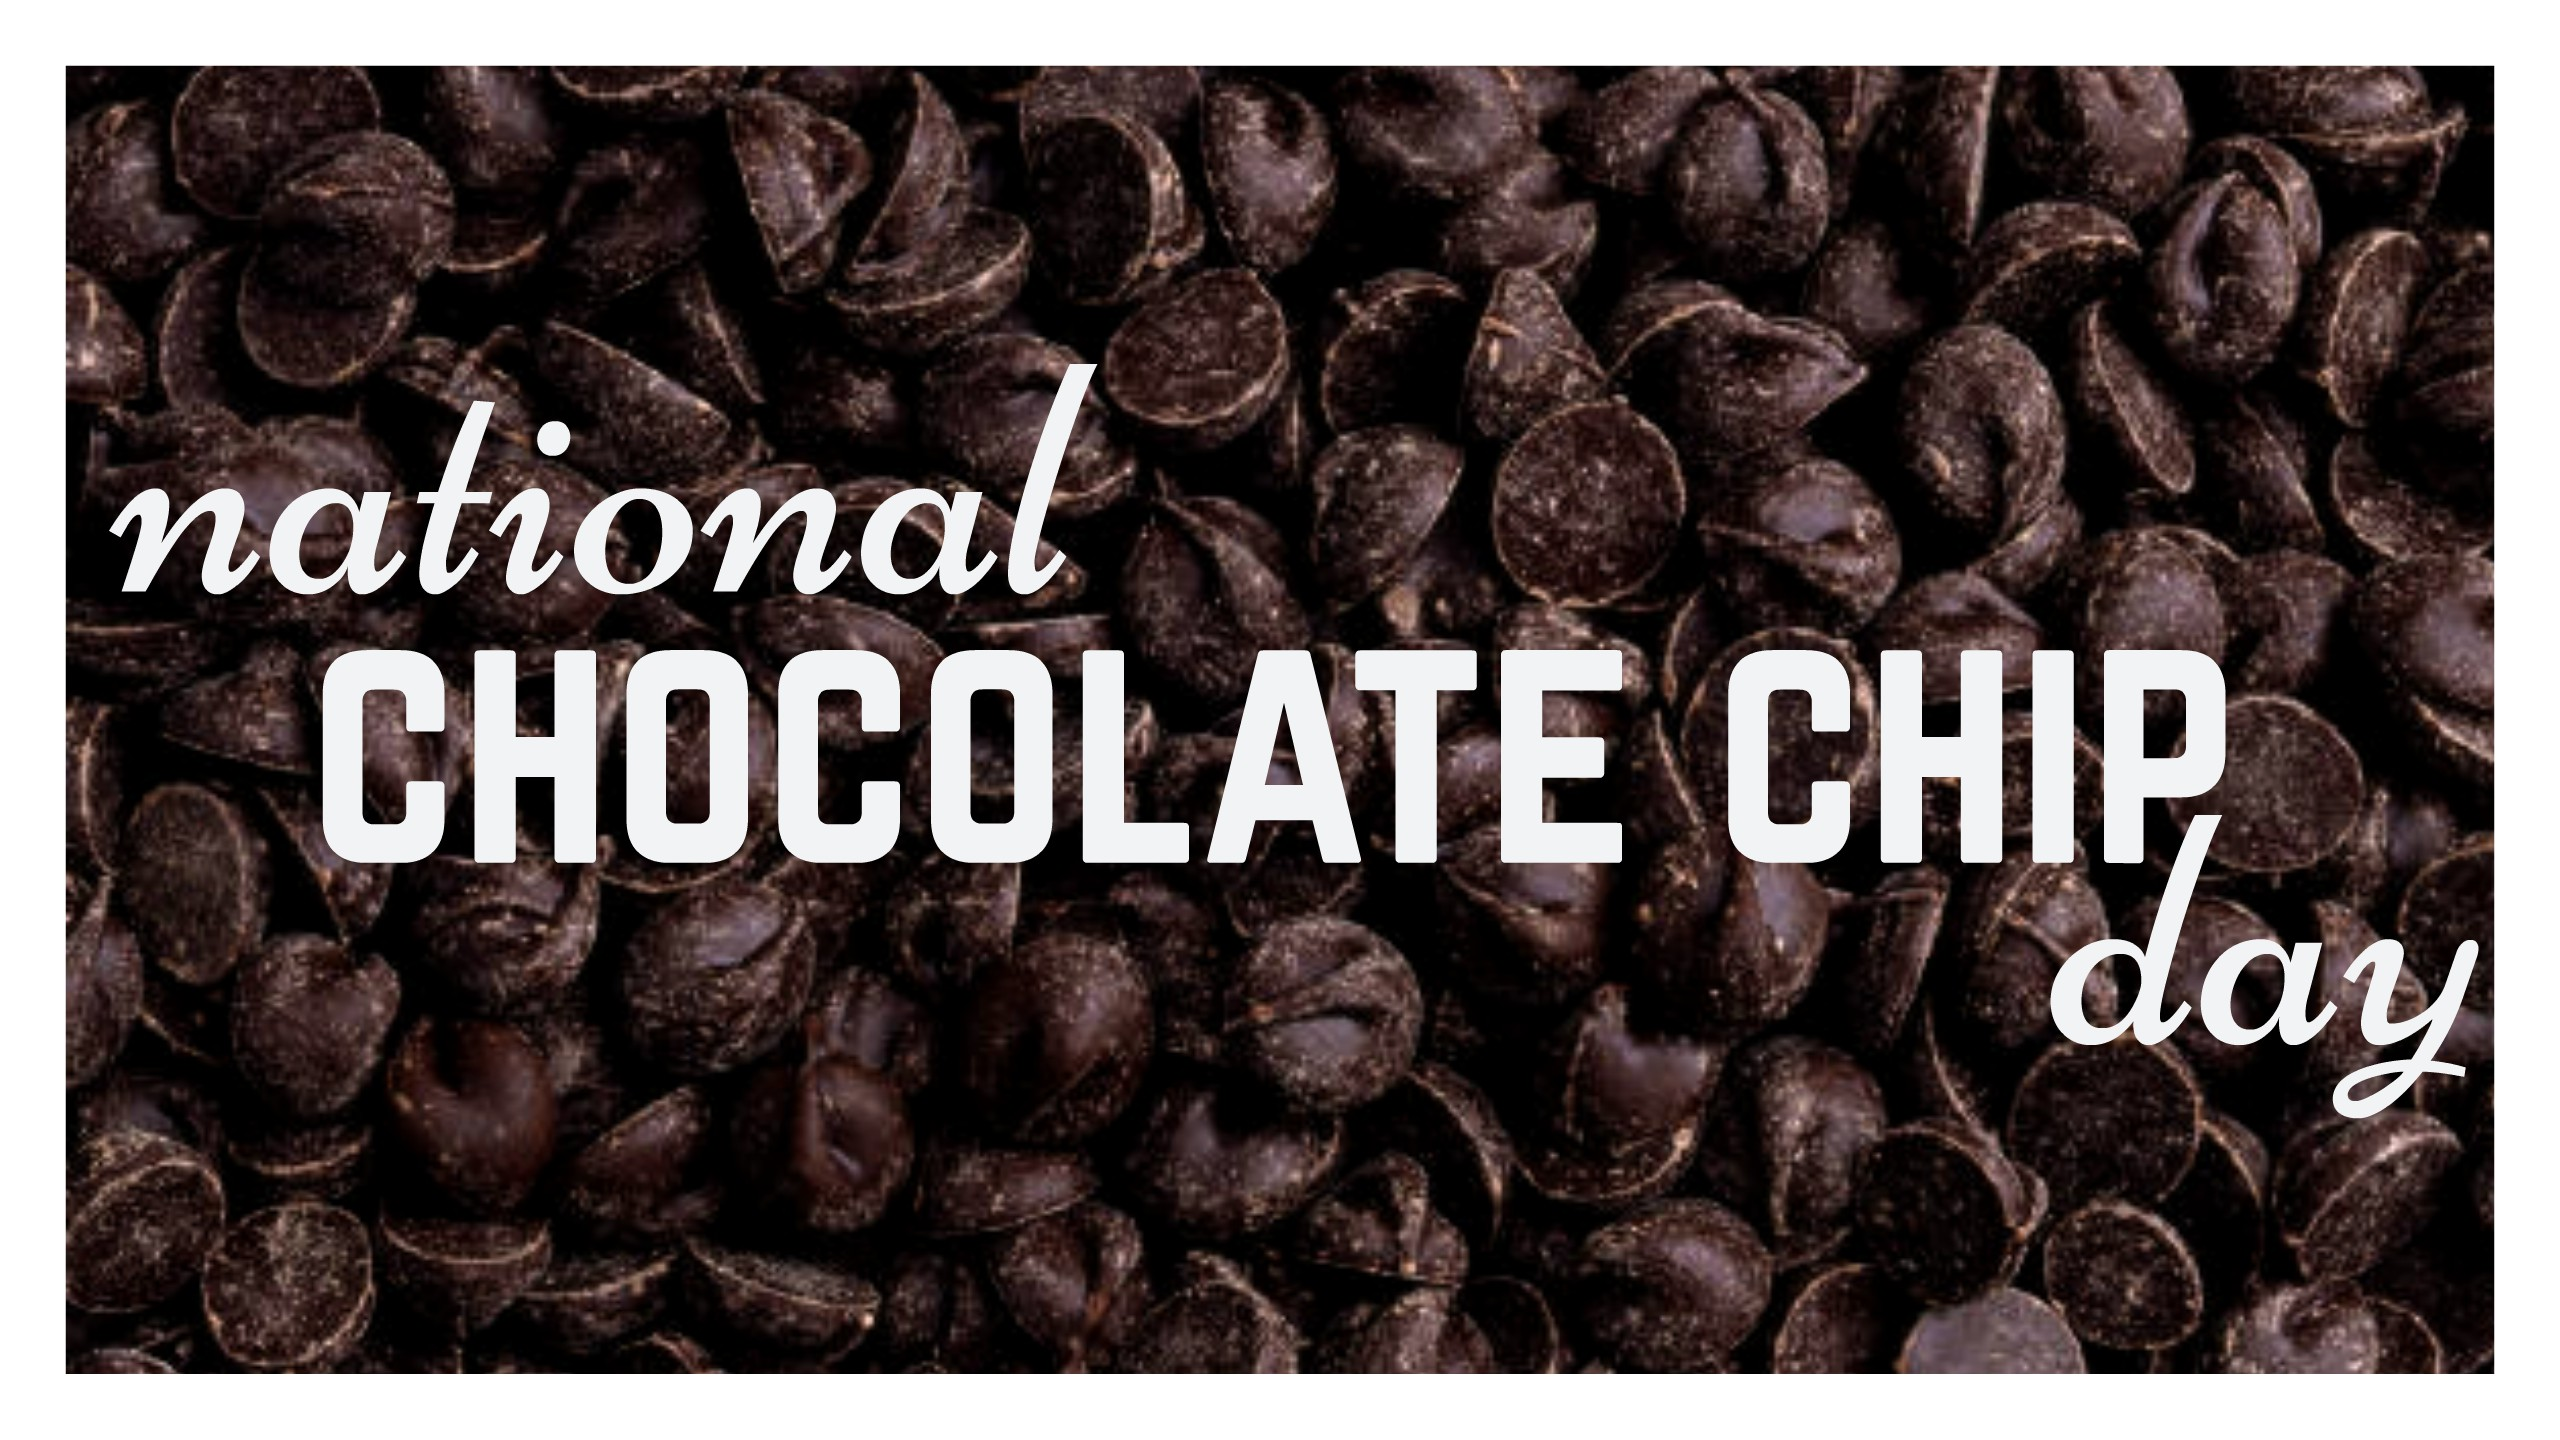 national chocolate chip day | Foodimentary - National Food ...